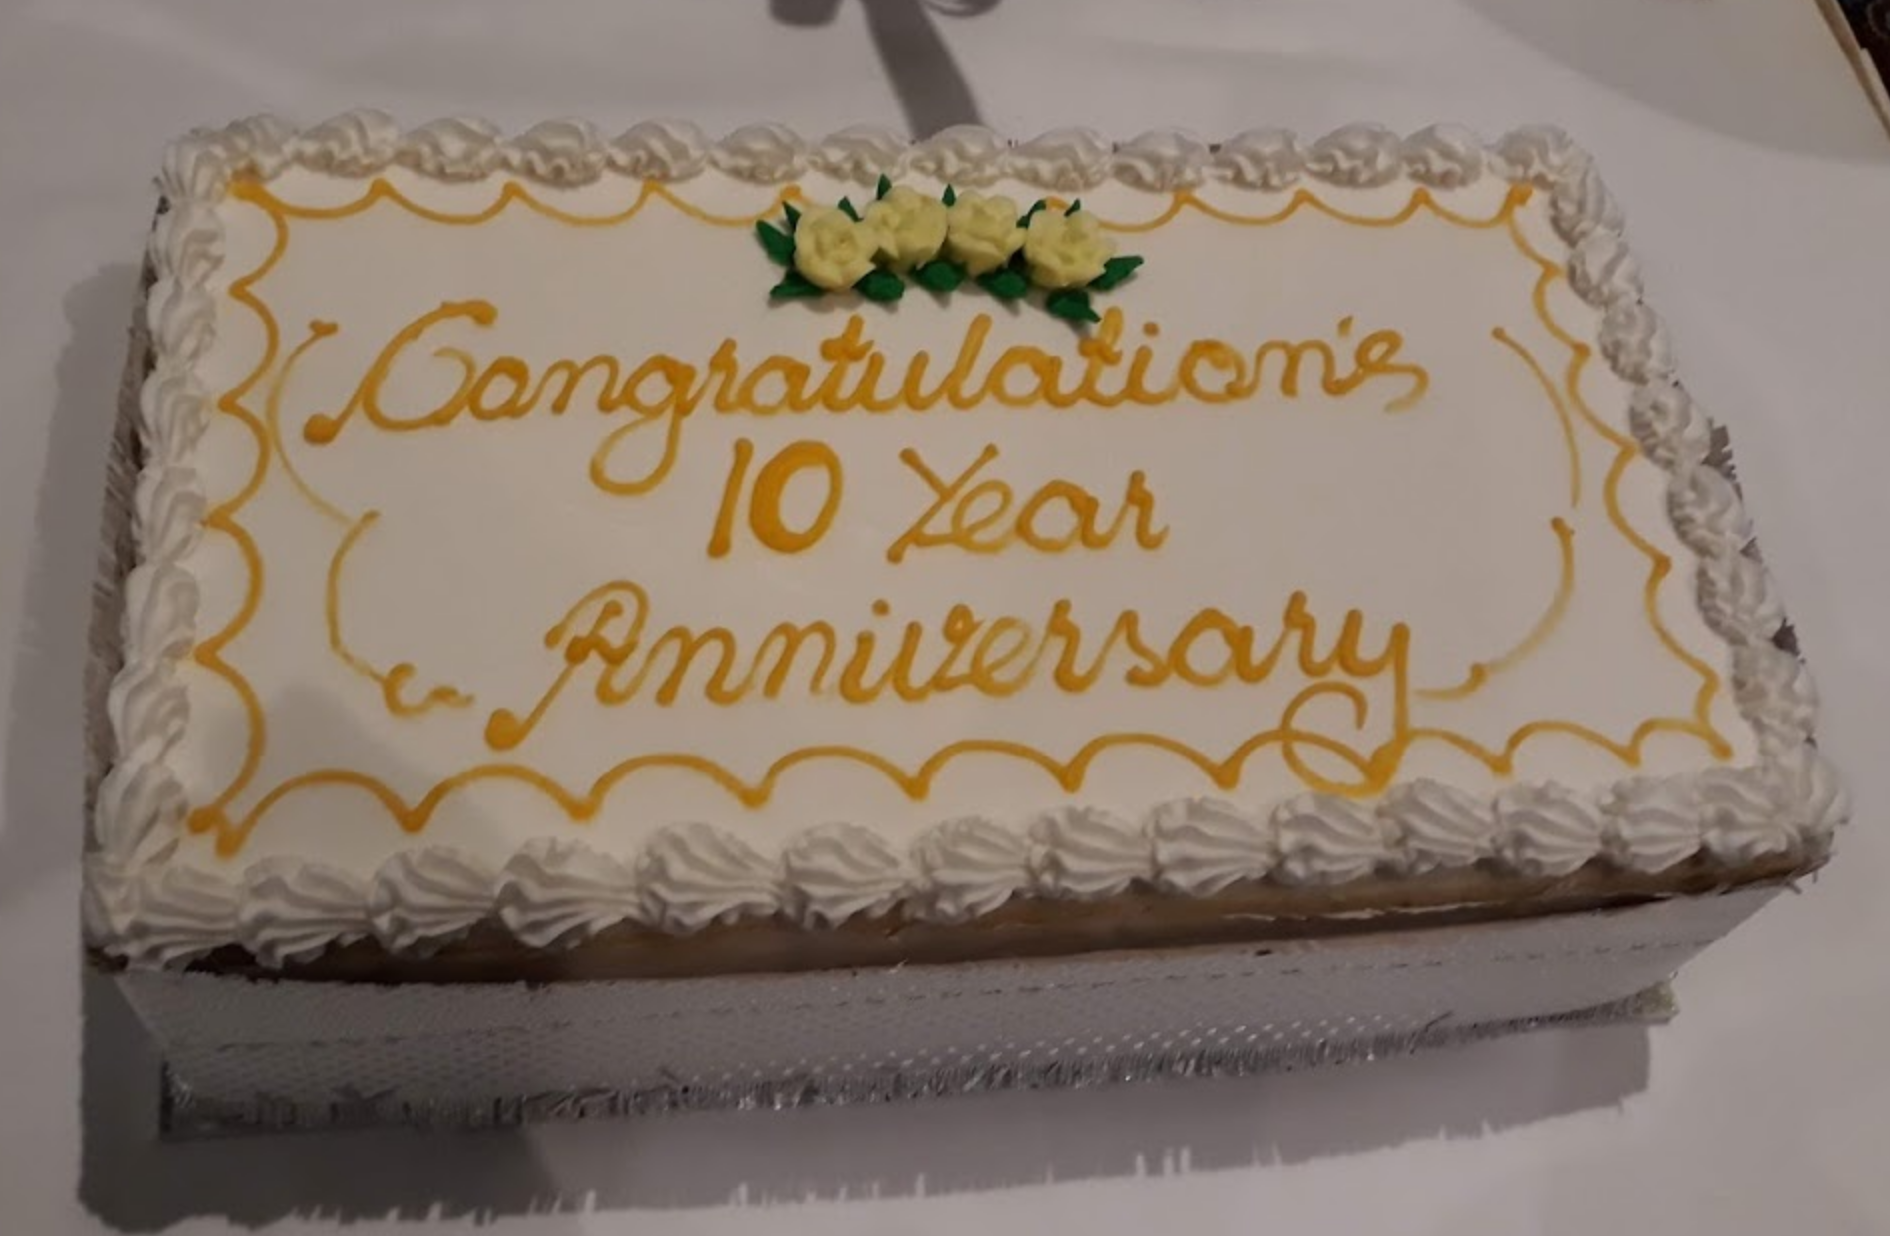 The Grange Toastmasters 10th Anniversary - September 2019